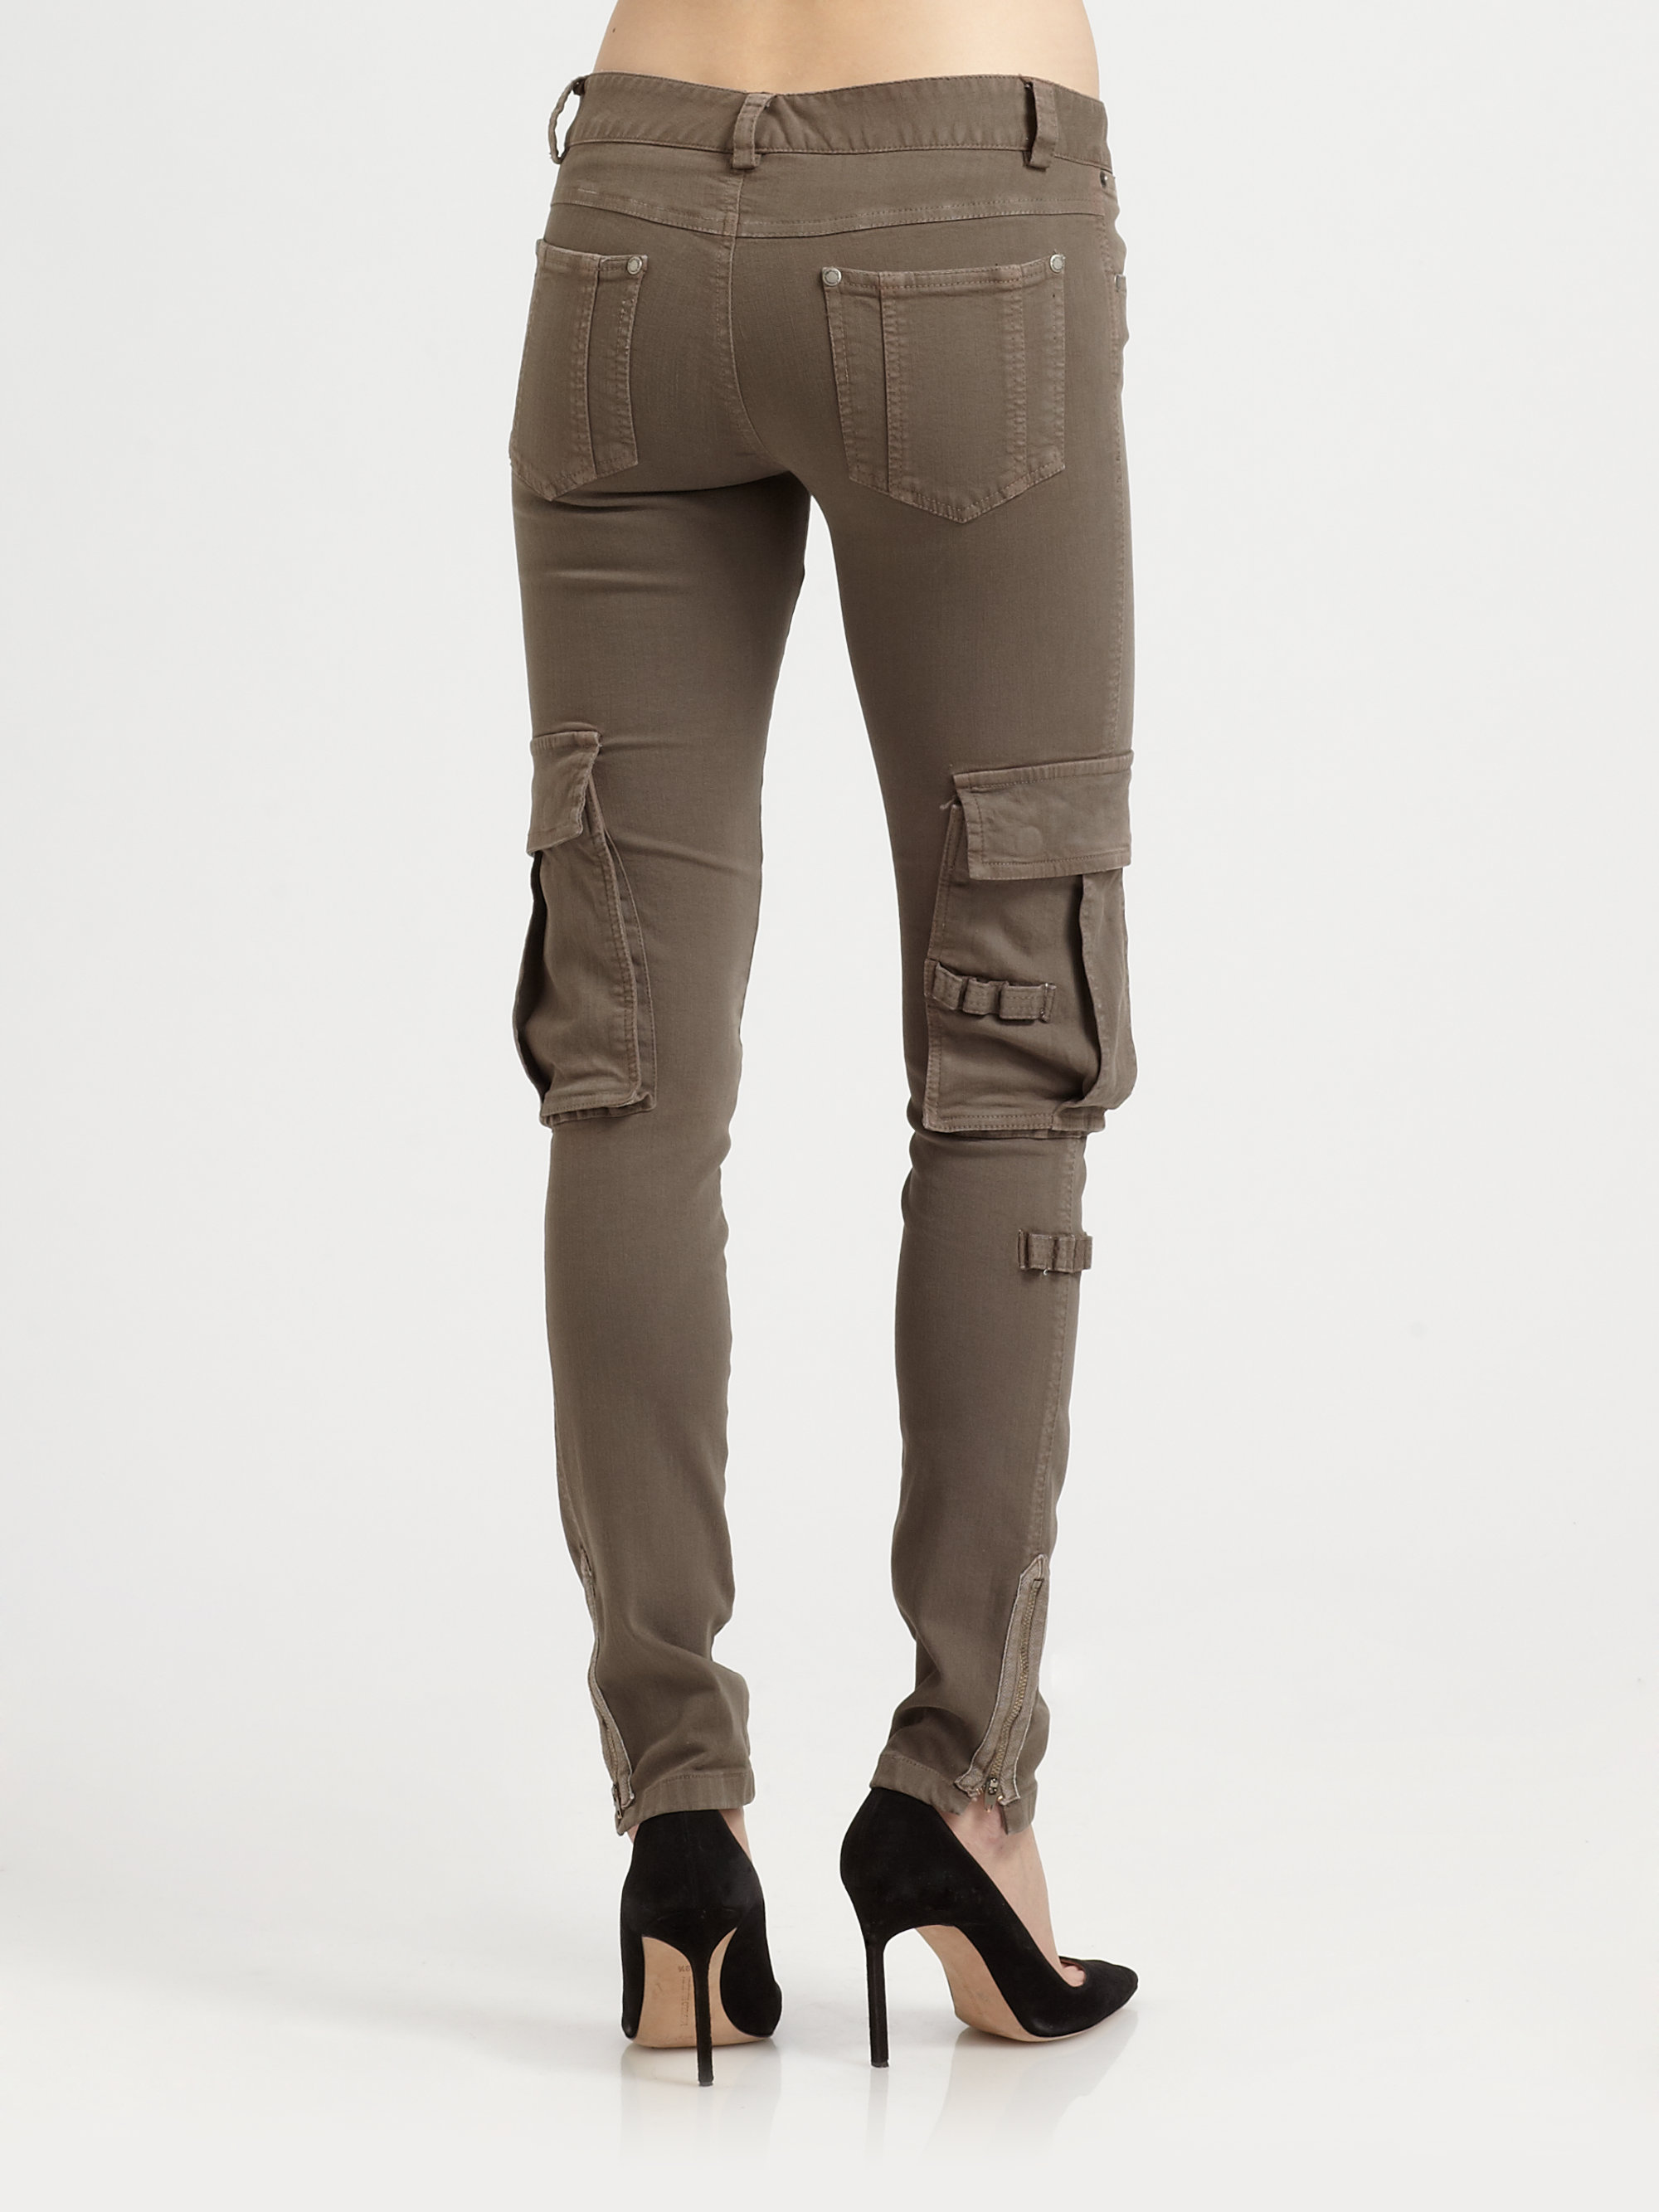 Brilliant Womens Olive Green Cargo Pants  Pant Olo